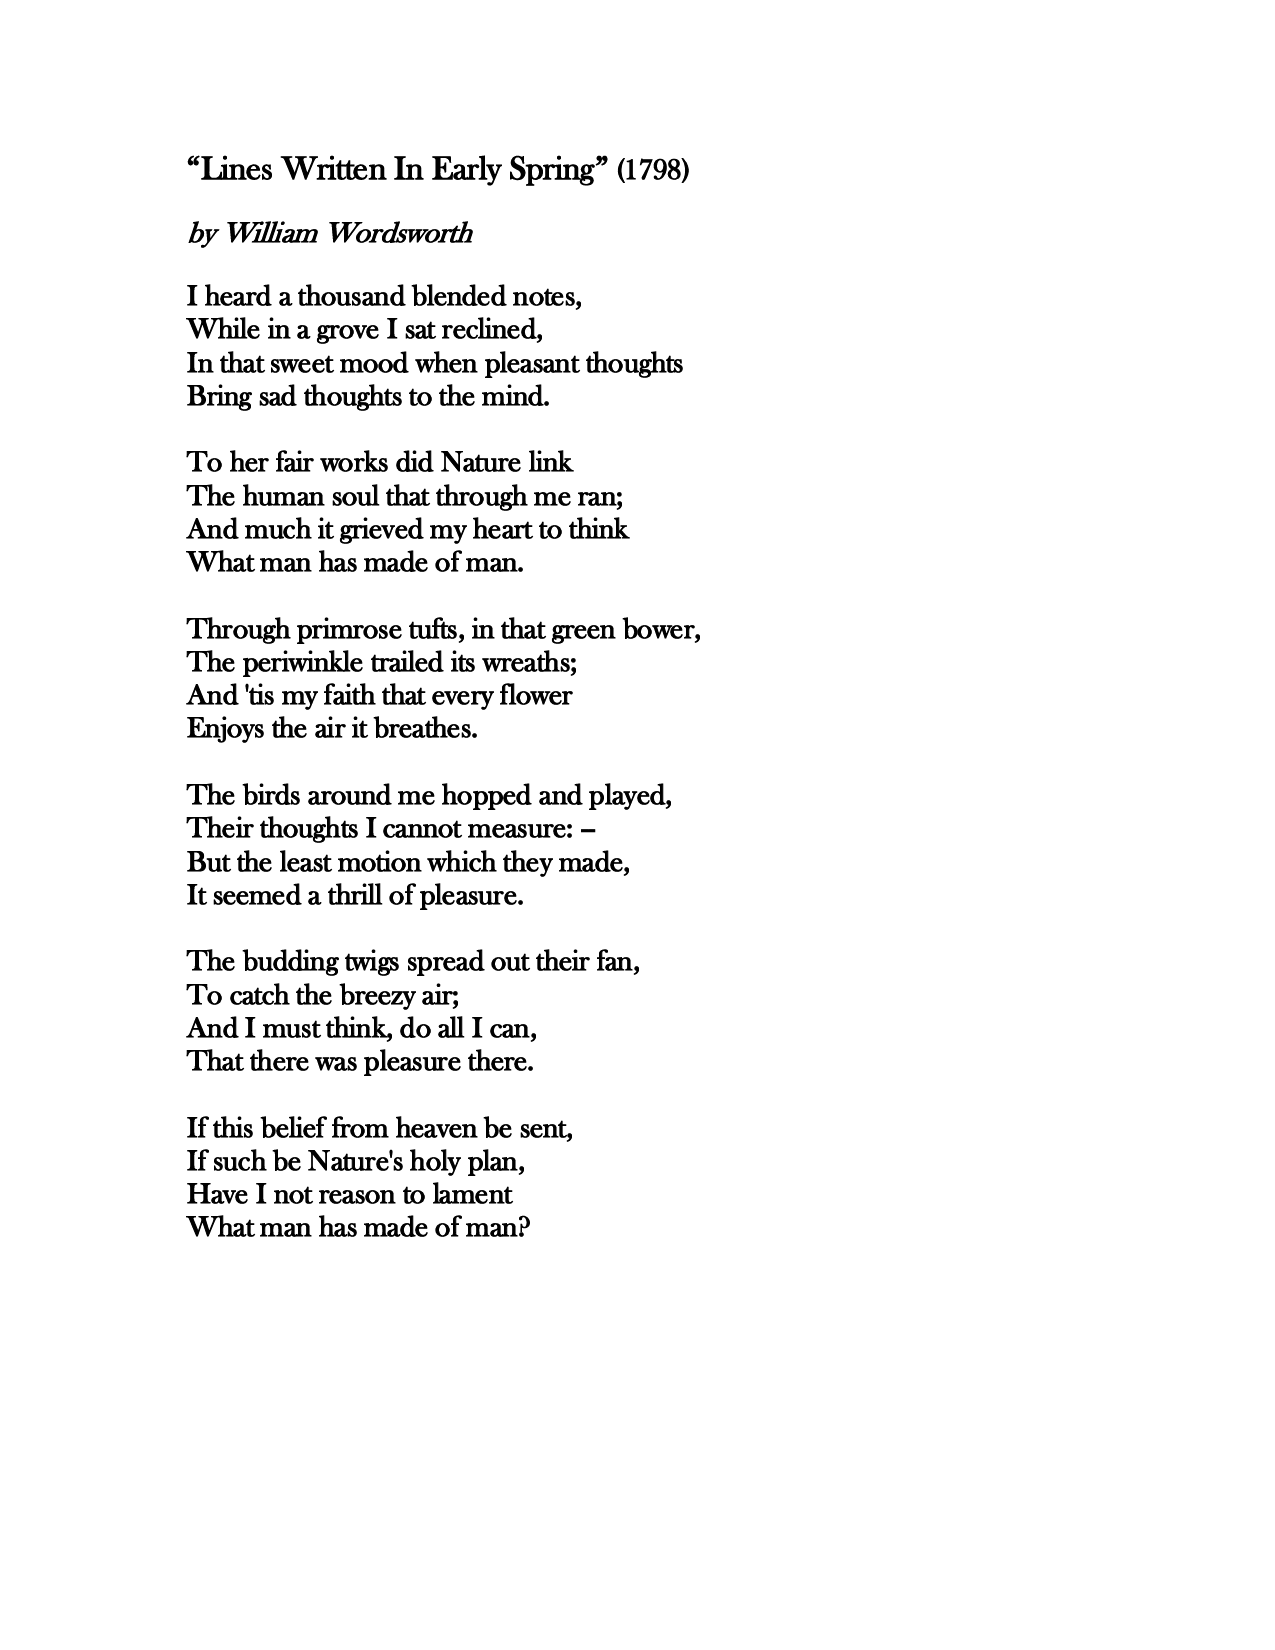 lines written in early spring by william wordsworth quotes william wordsworth